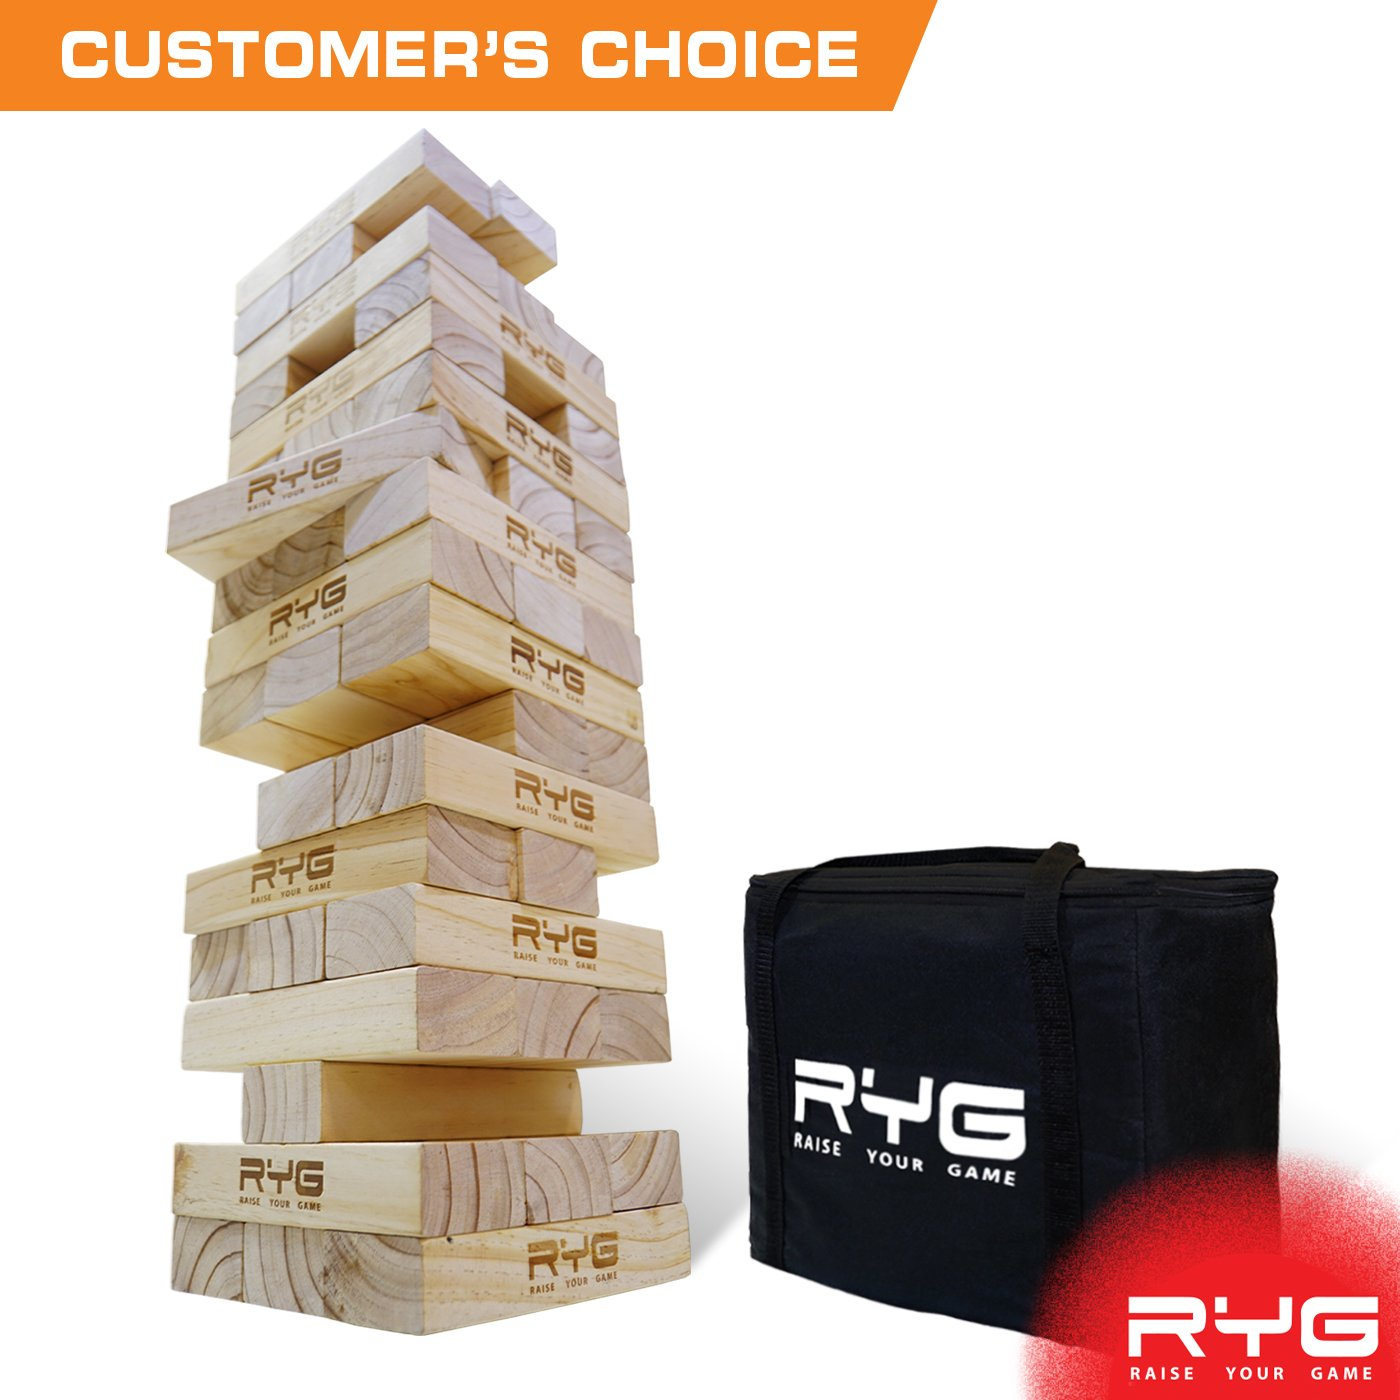 RYG Giant Wooden Toppling Tower, Large Tumbling Timbers, Wood Stacking Game Set with Carrying Case, Stacks to 5+ Feet, for Yard Games